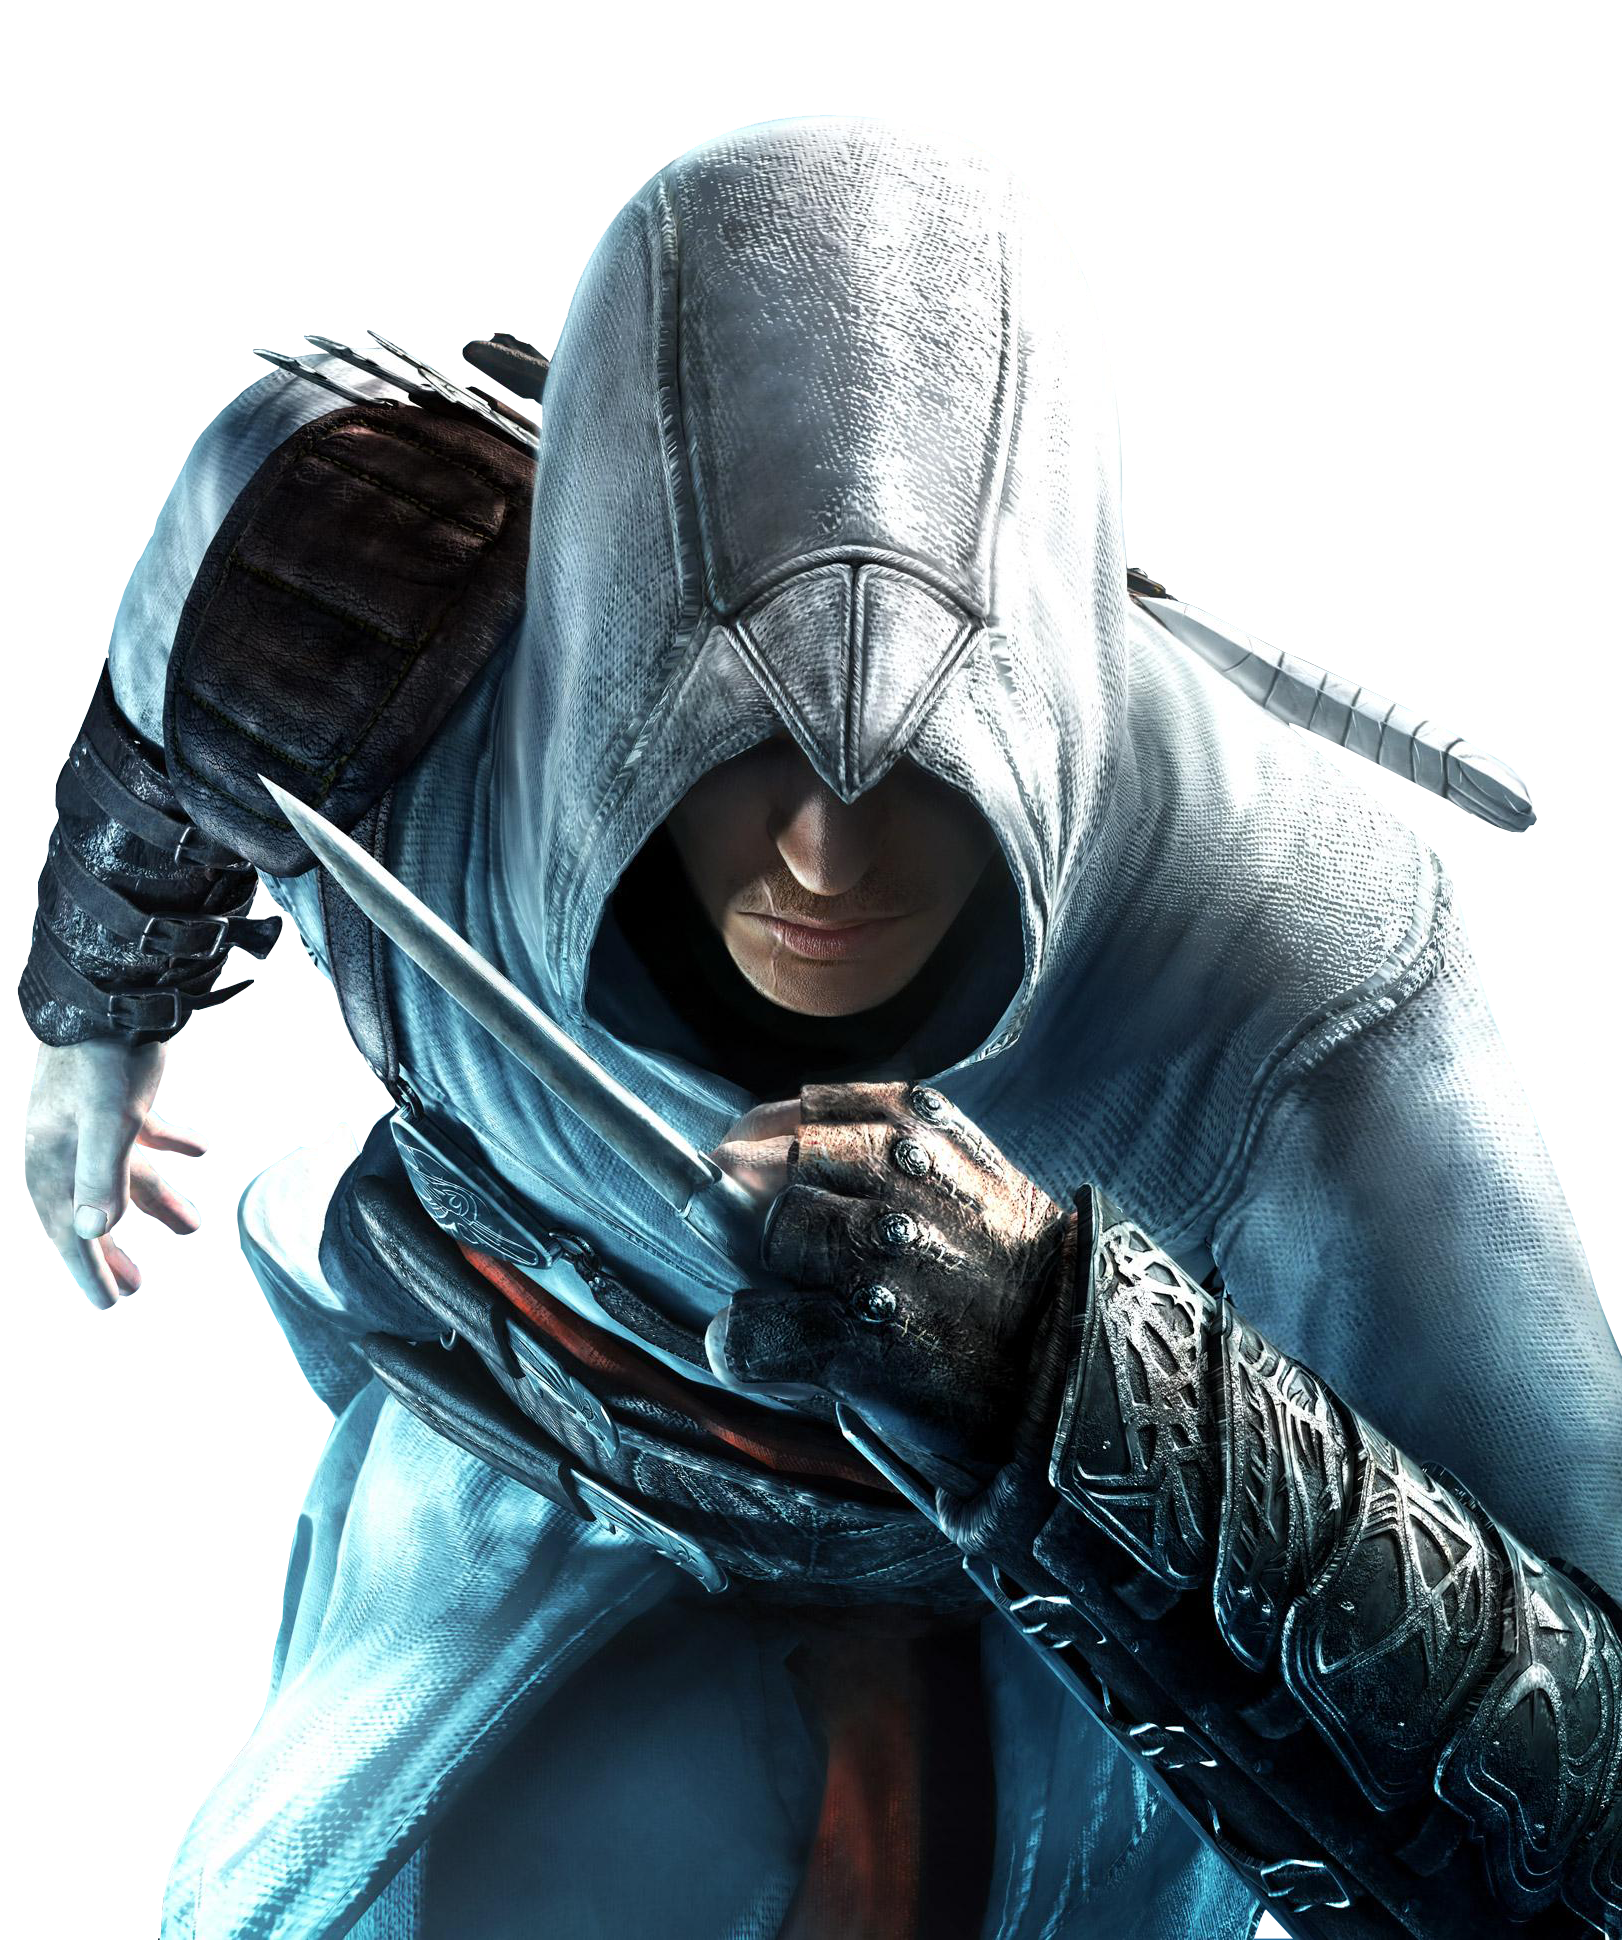 Image - Assassins Creed Altair.png | Assassin's Creed Wiki | FANDOM powered by Wikia